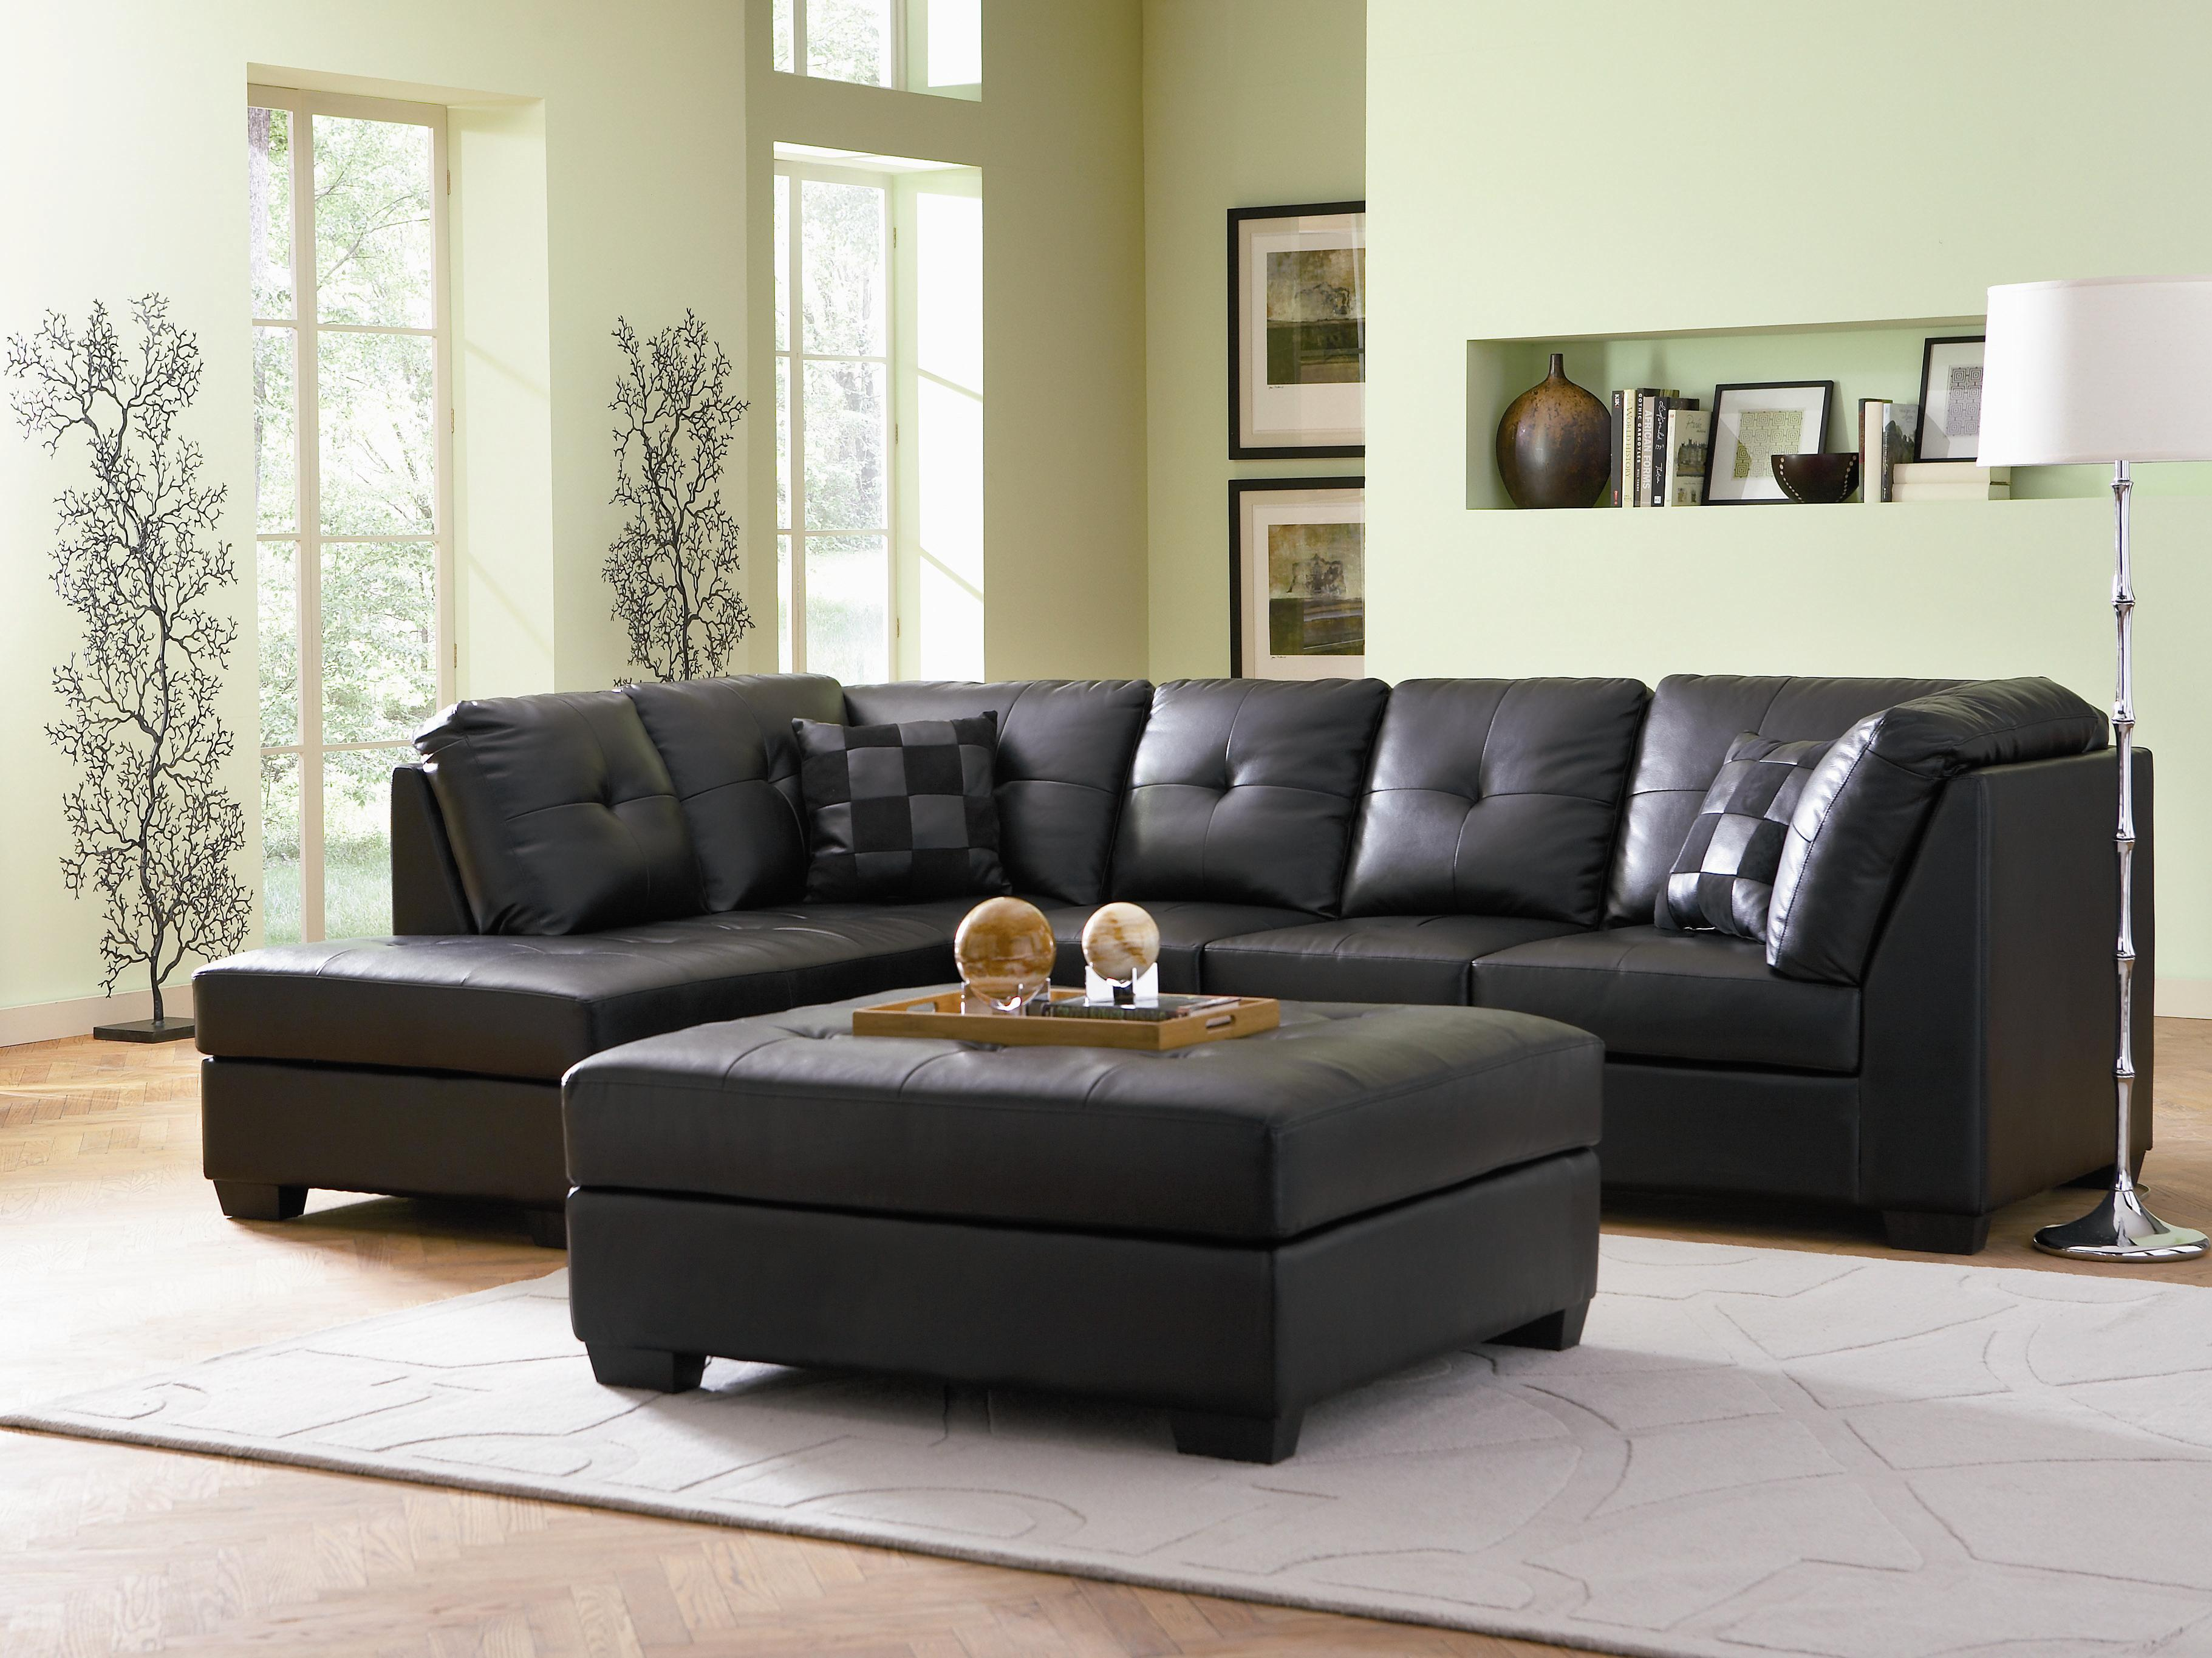 Darie Leather Sectional Sofa by Coaster at Northeast Factory Direct